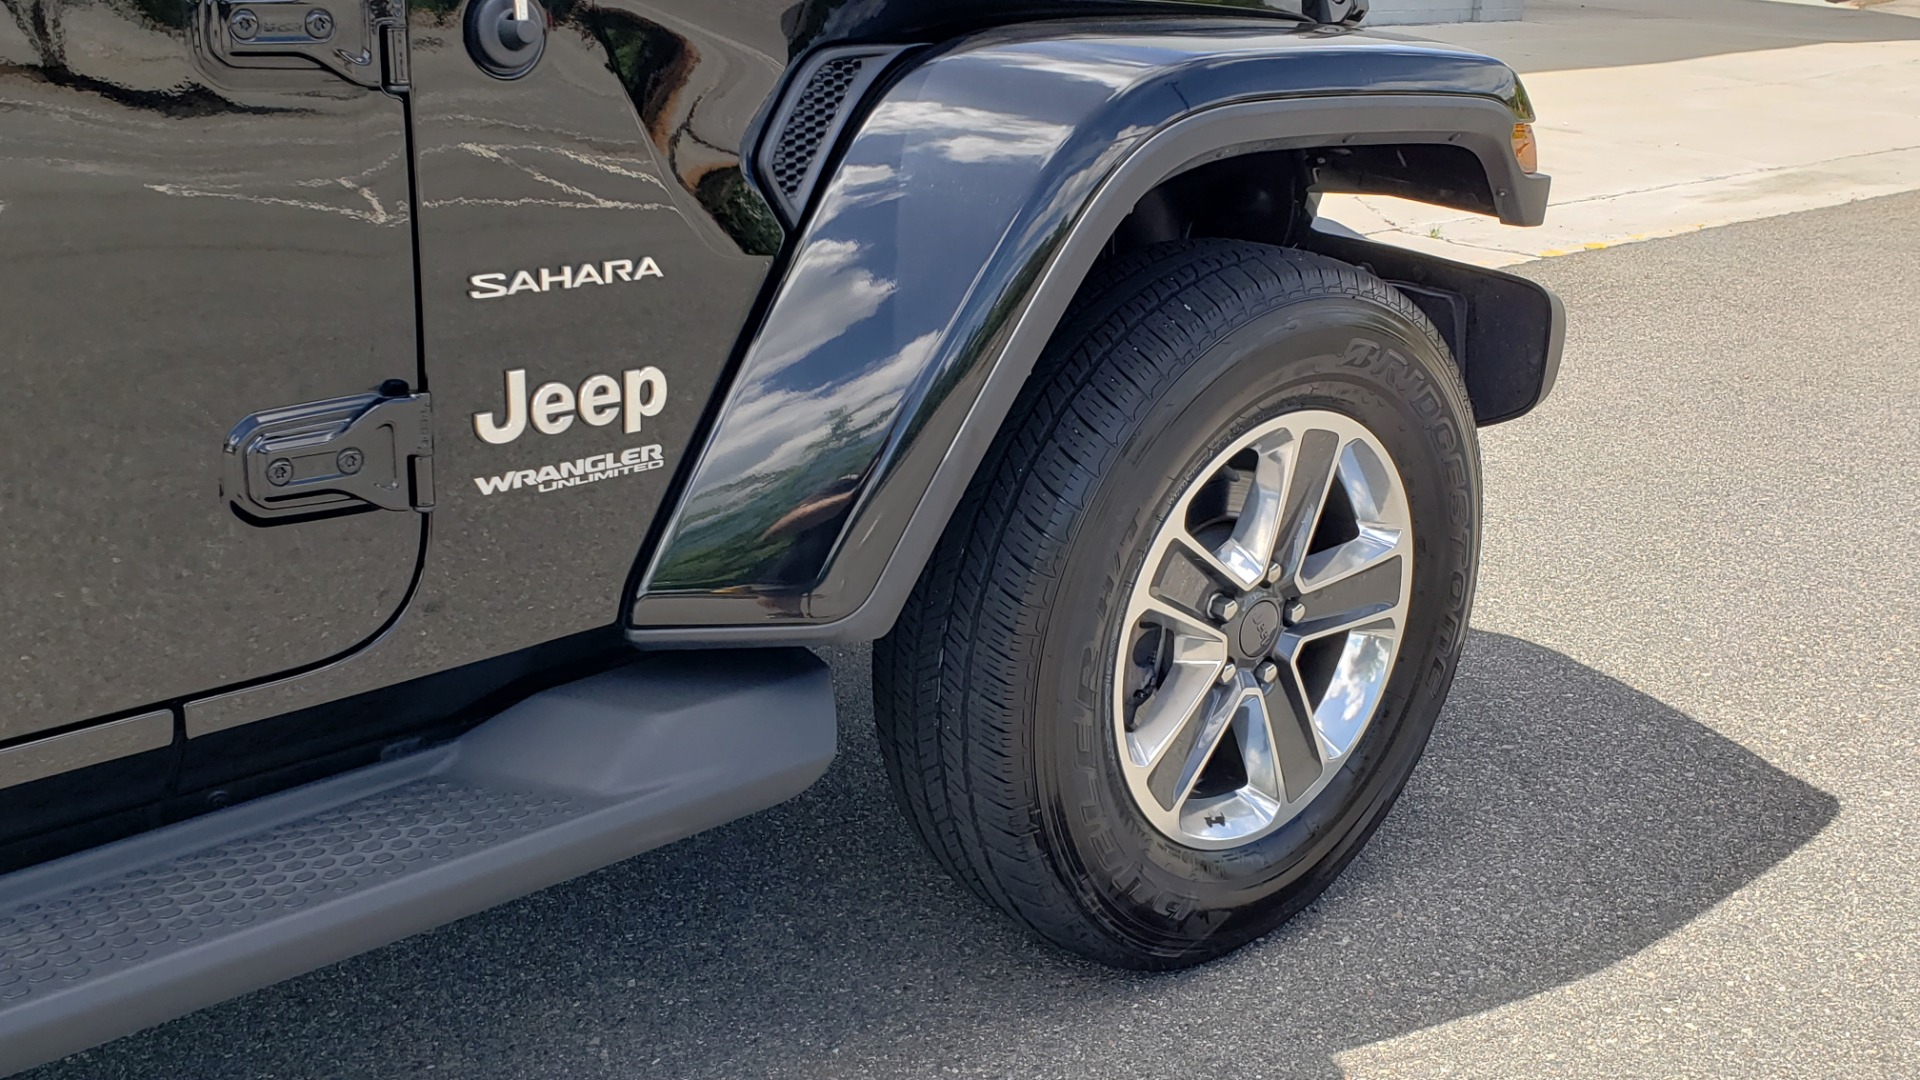 Used 2018 Jeep WRANGLER UNLIMITED SAHARA / 3.6L V6 / 6-SPD MAN / ALPINE / NAV / HTD STS / REARVIEW for sale $43,999 at Formula Imports in Charlotte NC 28227 100